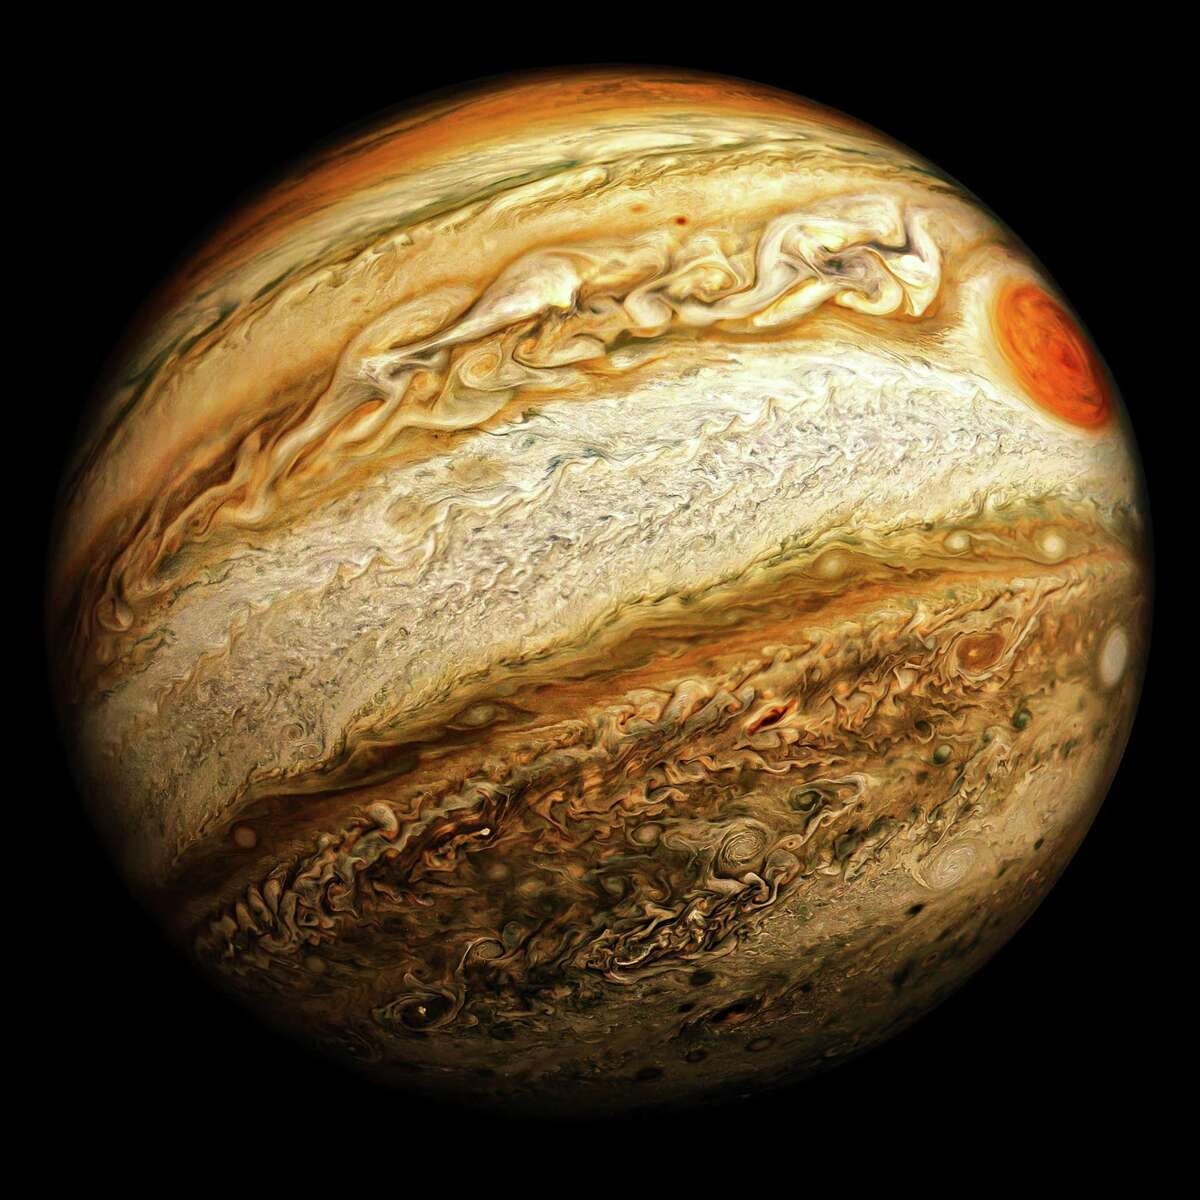 NASA has extended the Juno mission, led by Scott Bolton of Southwest Research Institute, to explore Jupiter through September 2025, expanding the science goals to include the overall Jovian system, made up of the planet and its rings and moons. Juno includes a public outreach instrument that allows citizen scientists to participate in the mission, processing JunoCam data to create images such as this highly enhanced